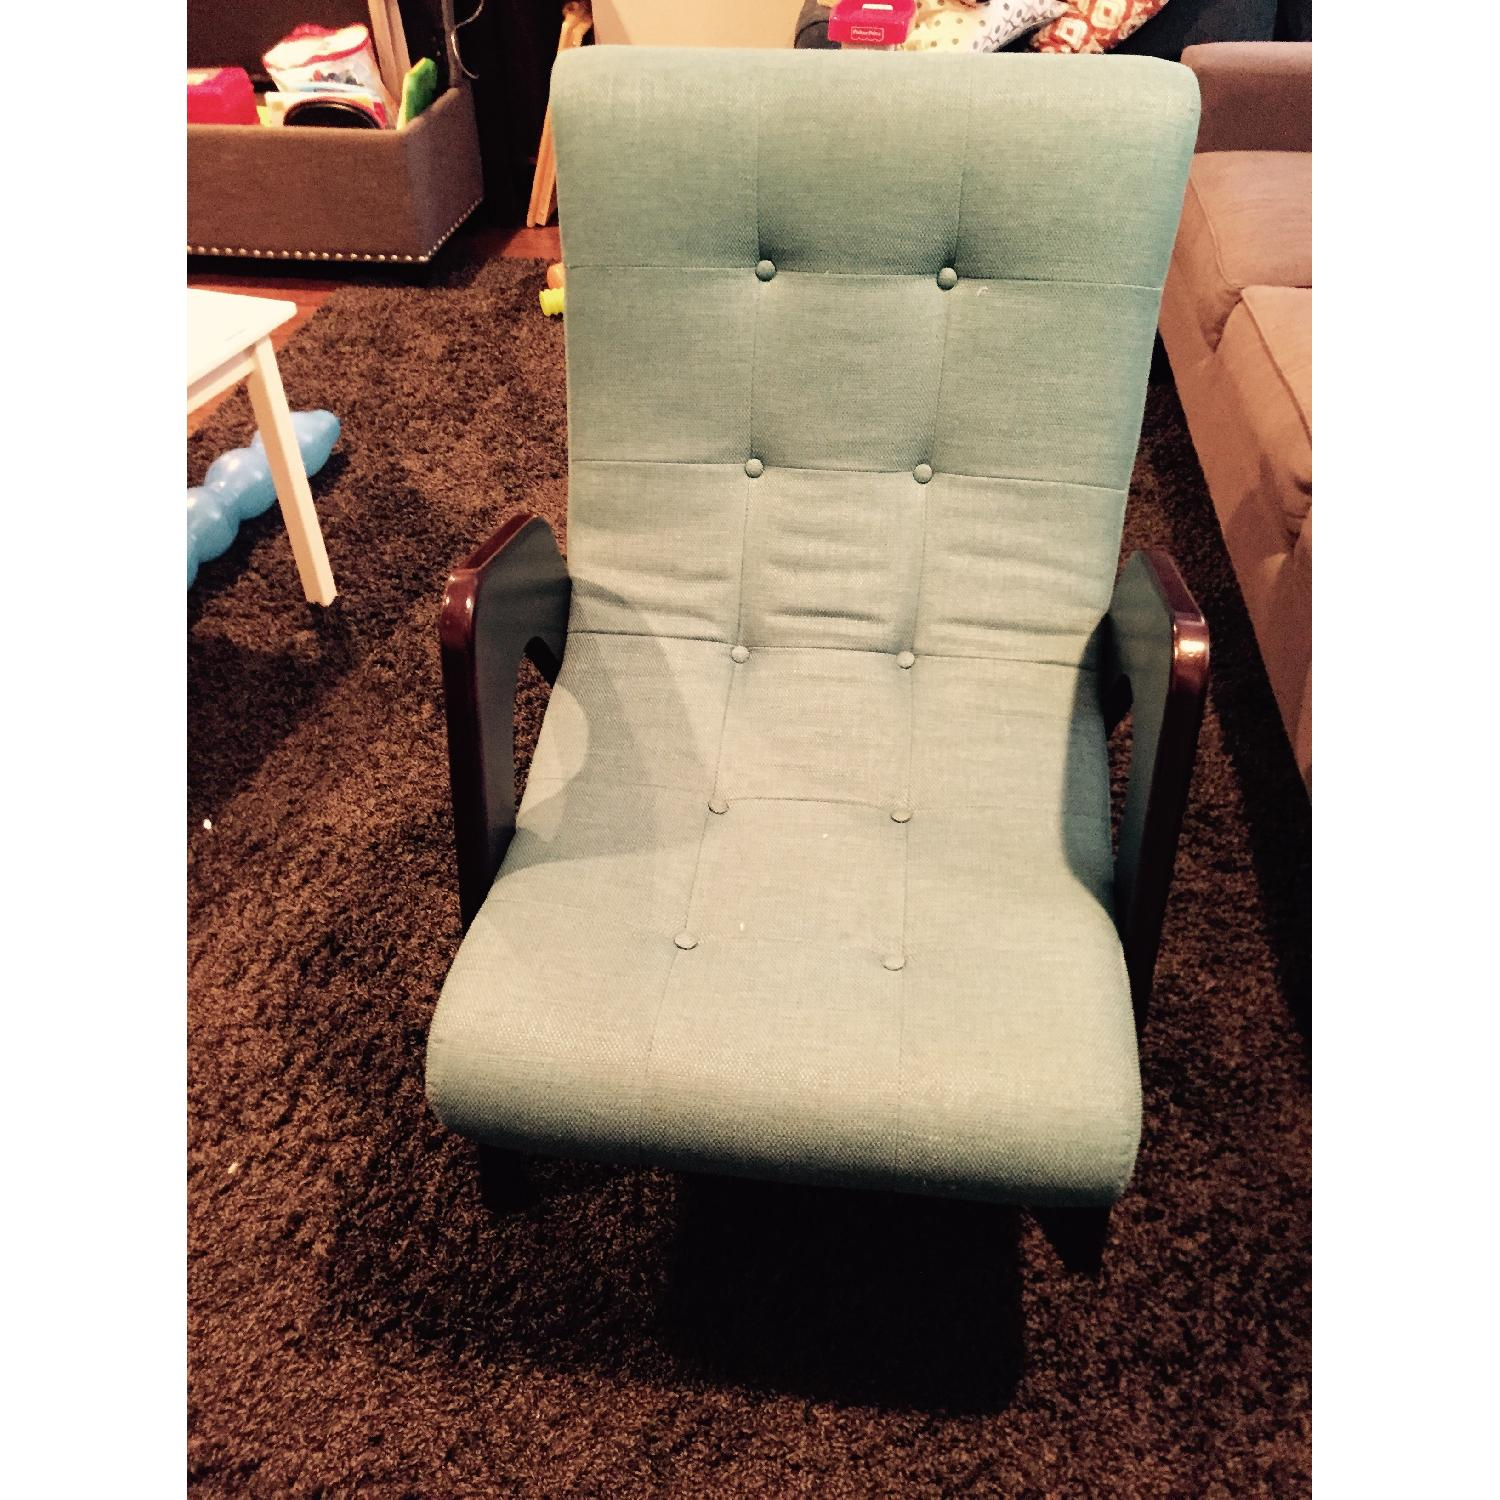 Younger Edie Retro-Chic Teal Lounge Chair - image-2